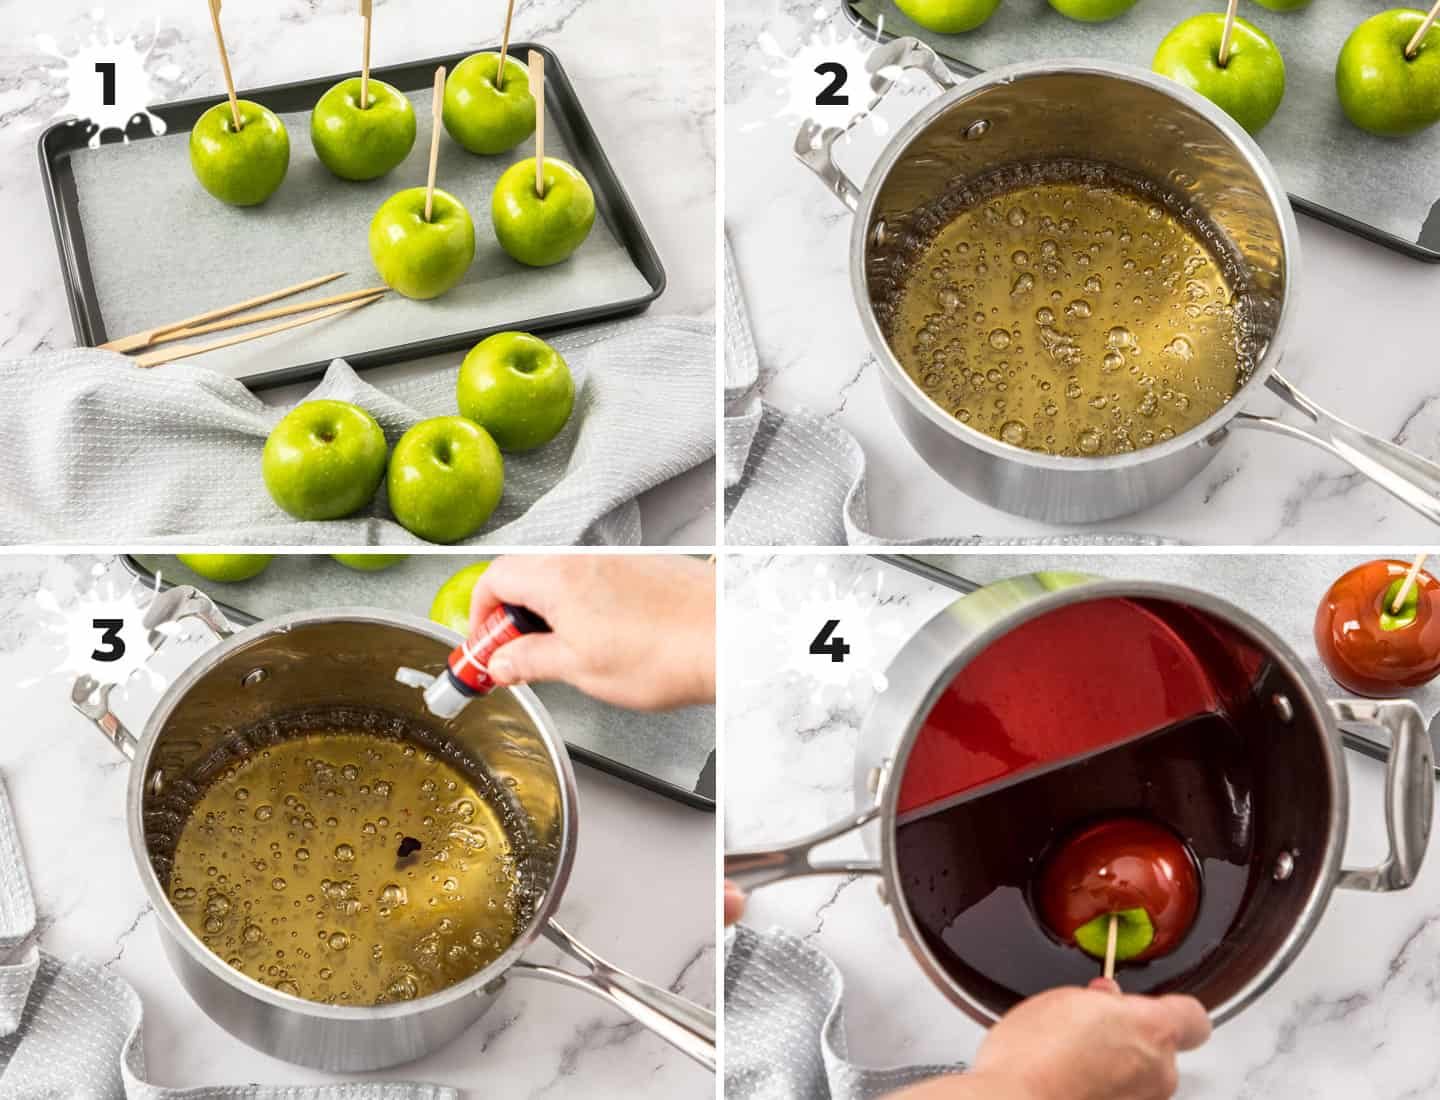 A collage of 4 images showing how to make toffee apples.